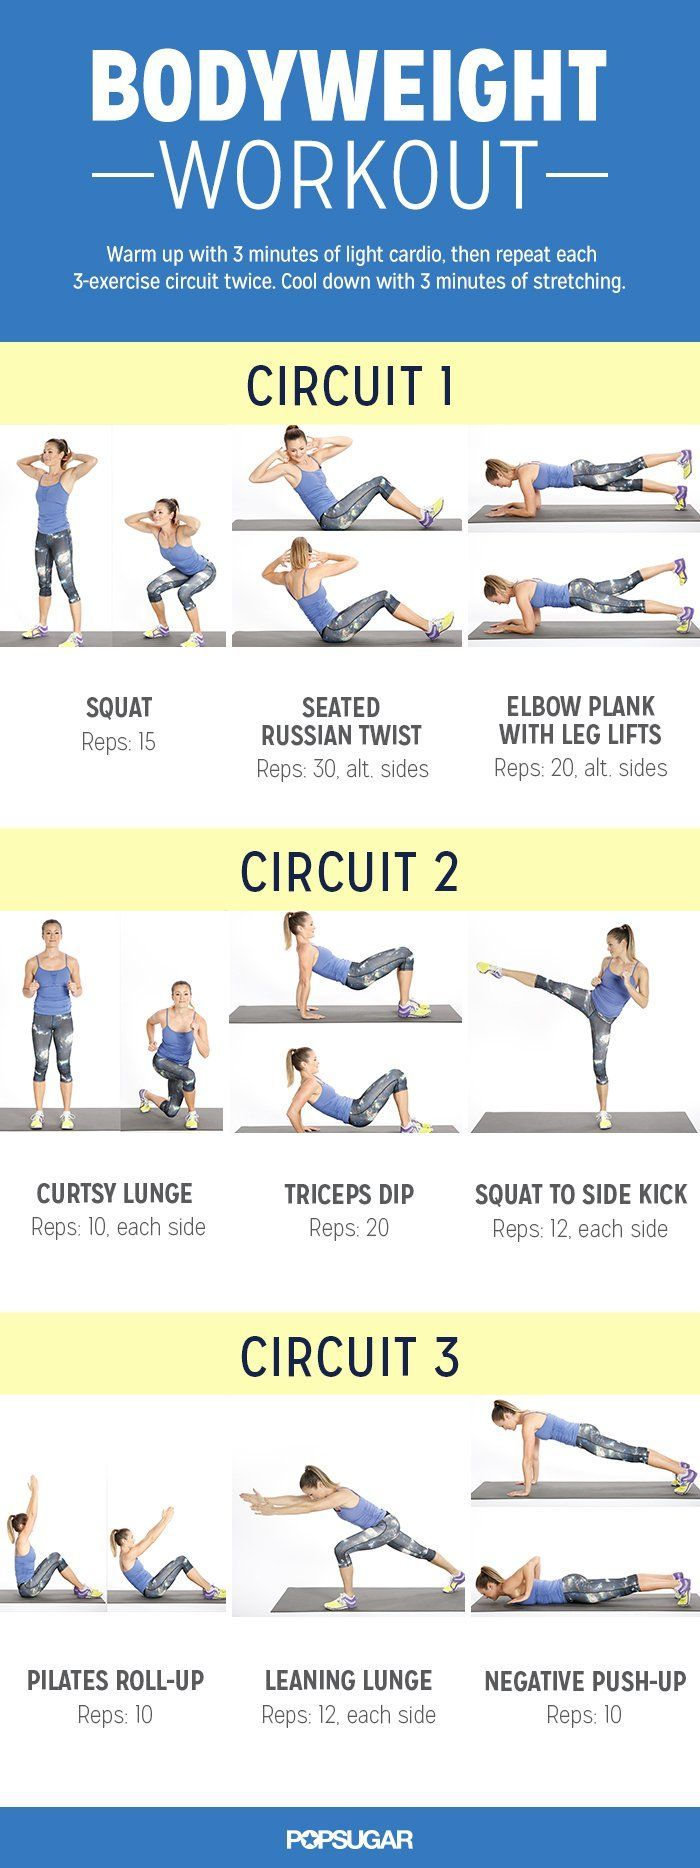 Tone and Strengthen Your Entire Body With This At-Home Workout | Pinterest | Workout, Muscles and Circuits